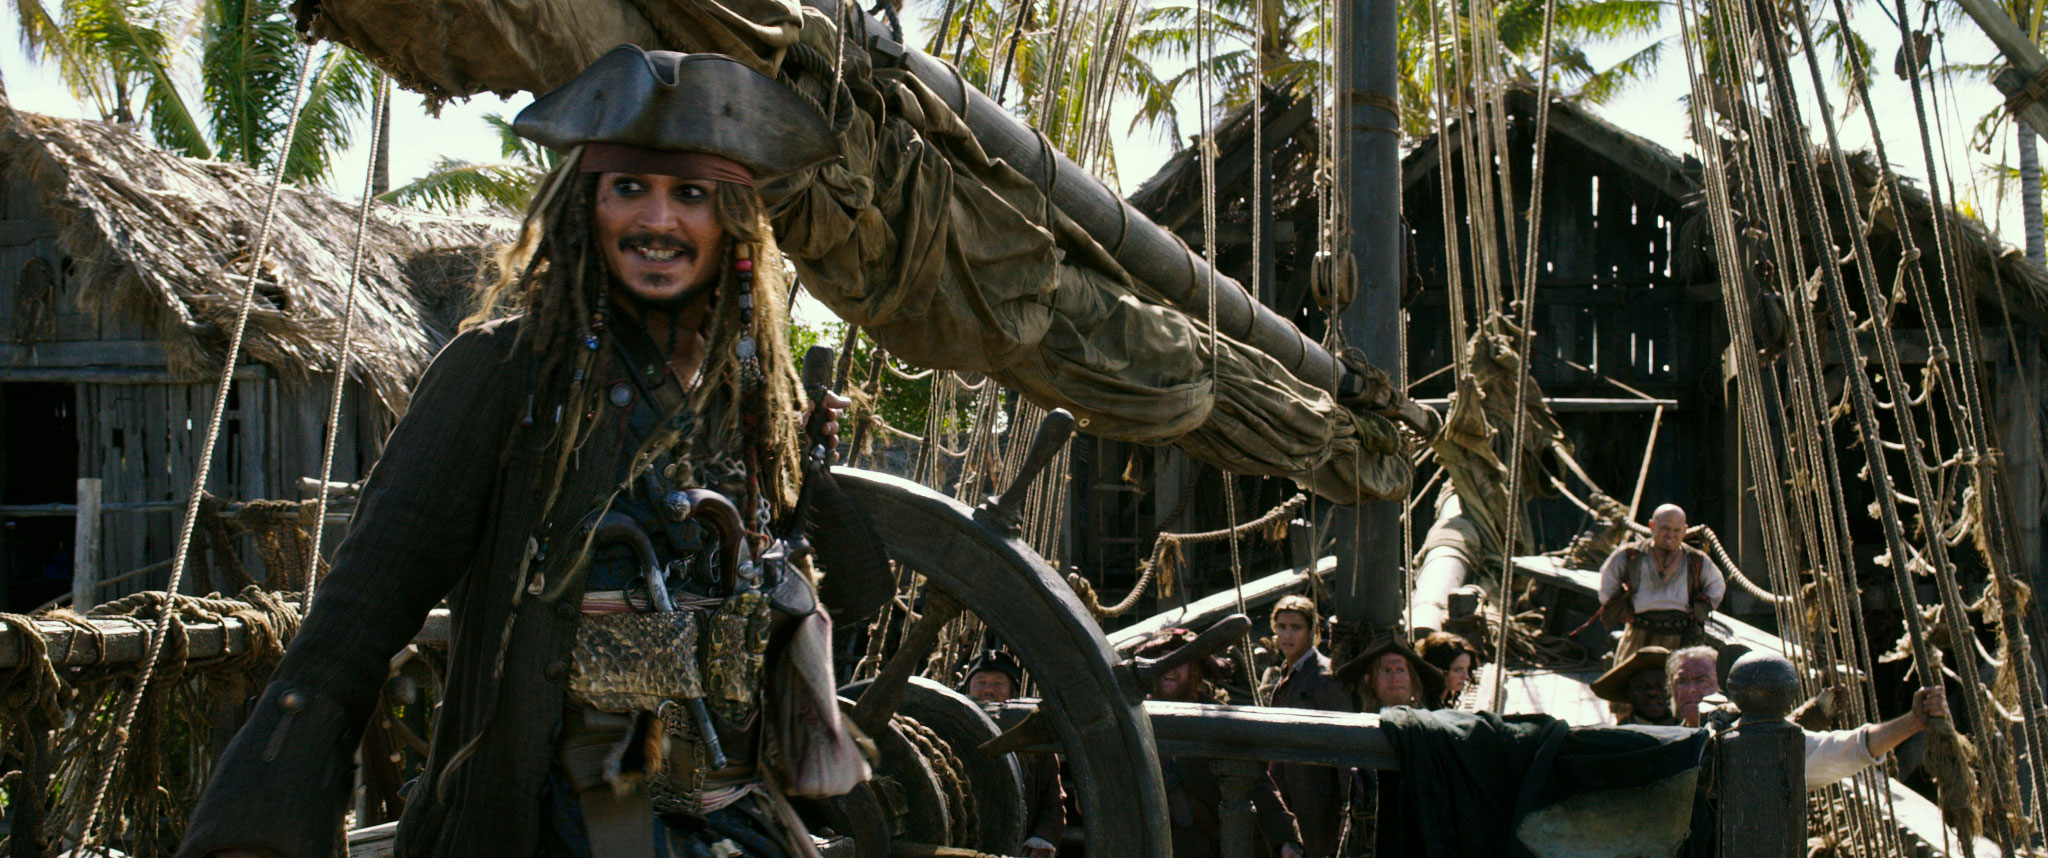 Pirates of the Caribbean: Dead Men Tell No Tales, but Disney does, over and over again